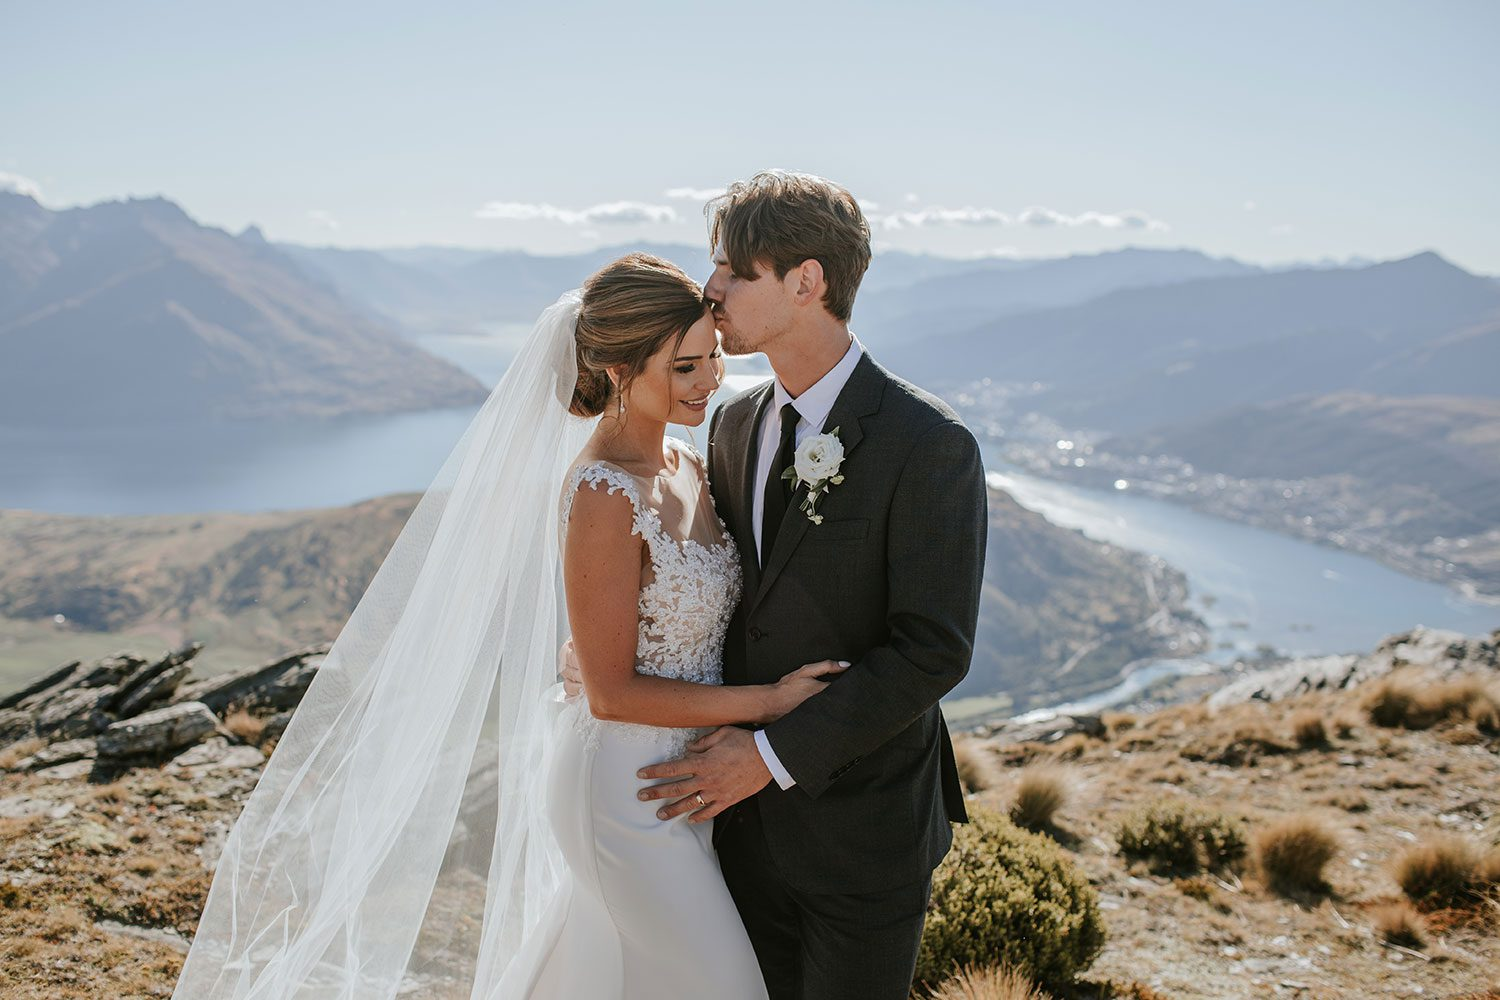 Bride wearing bespoke bridal gown with richly beaded lace over sheer tulle bodice and low back from Auckland wedding dress designer Vinka designs -profile with groom on hill